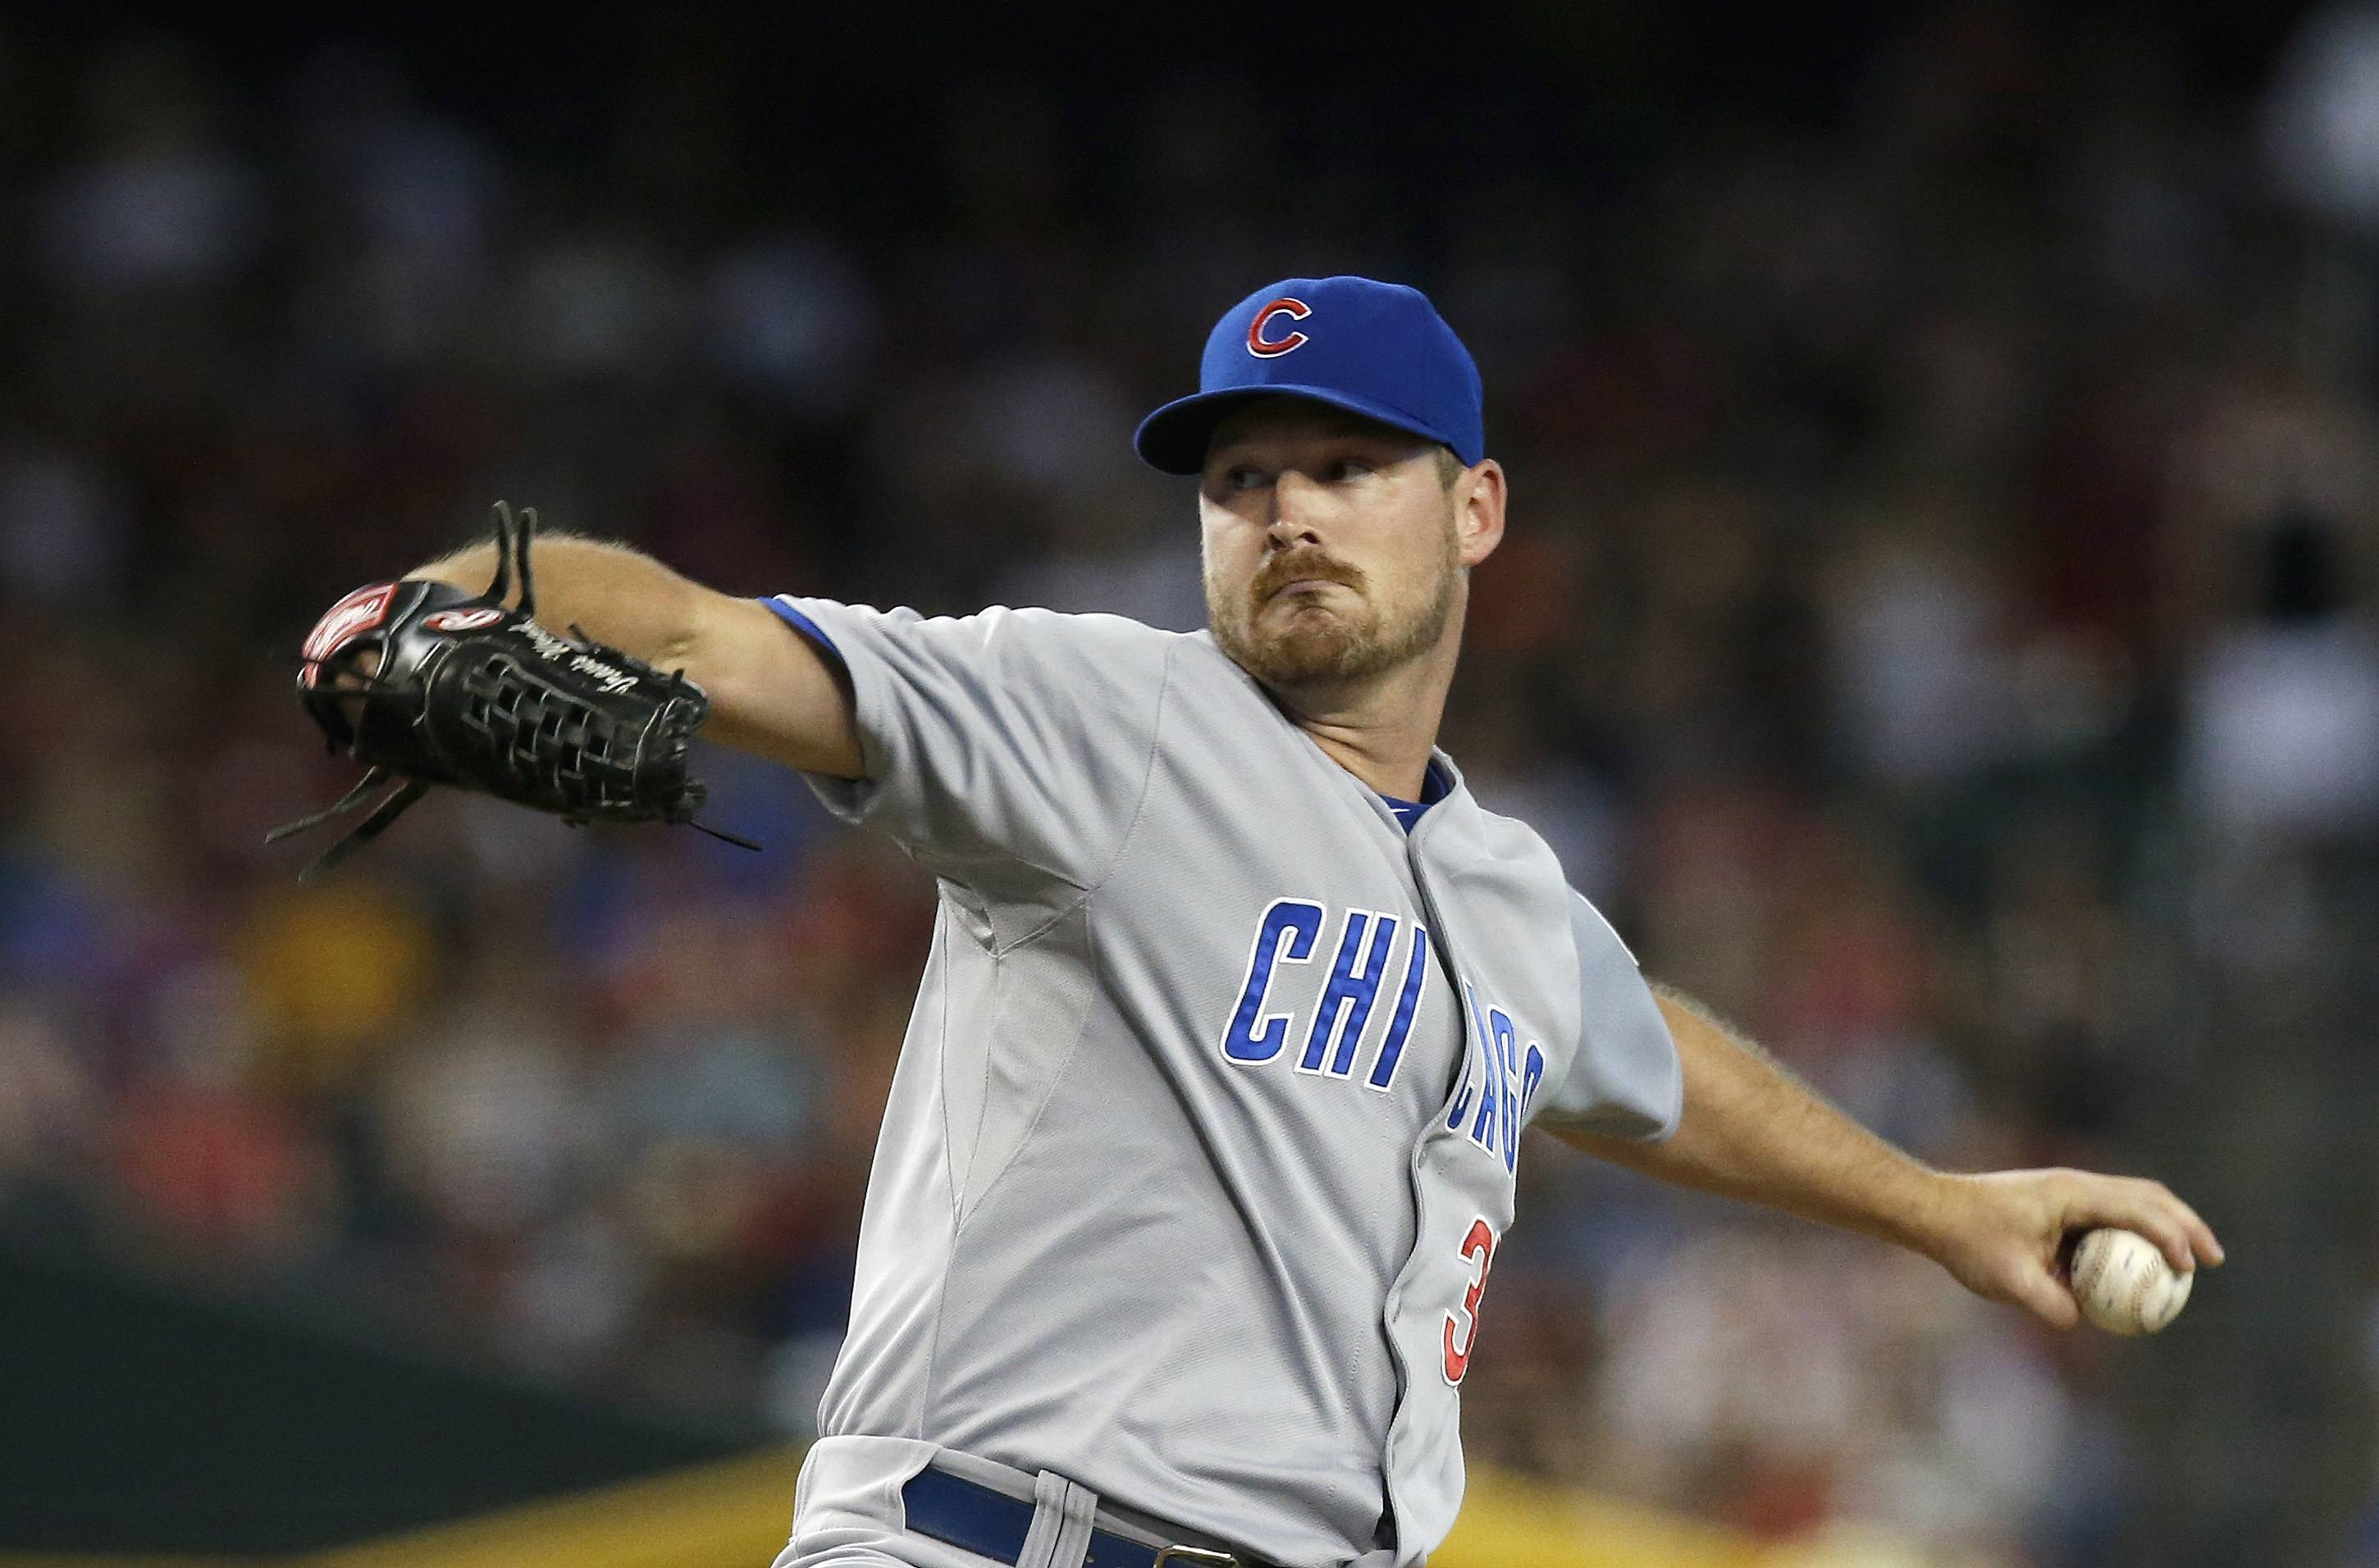 Can starter Travis Wood find himself again and be a part of future Cubs rotations?